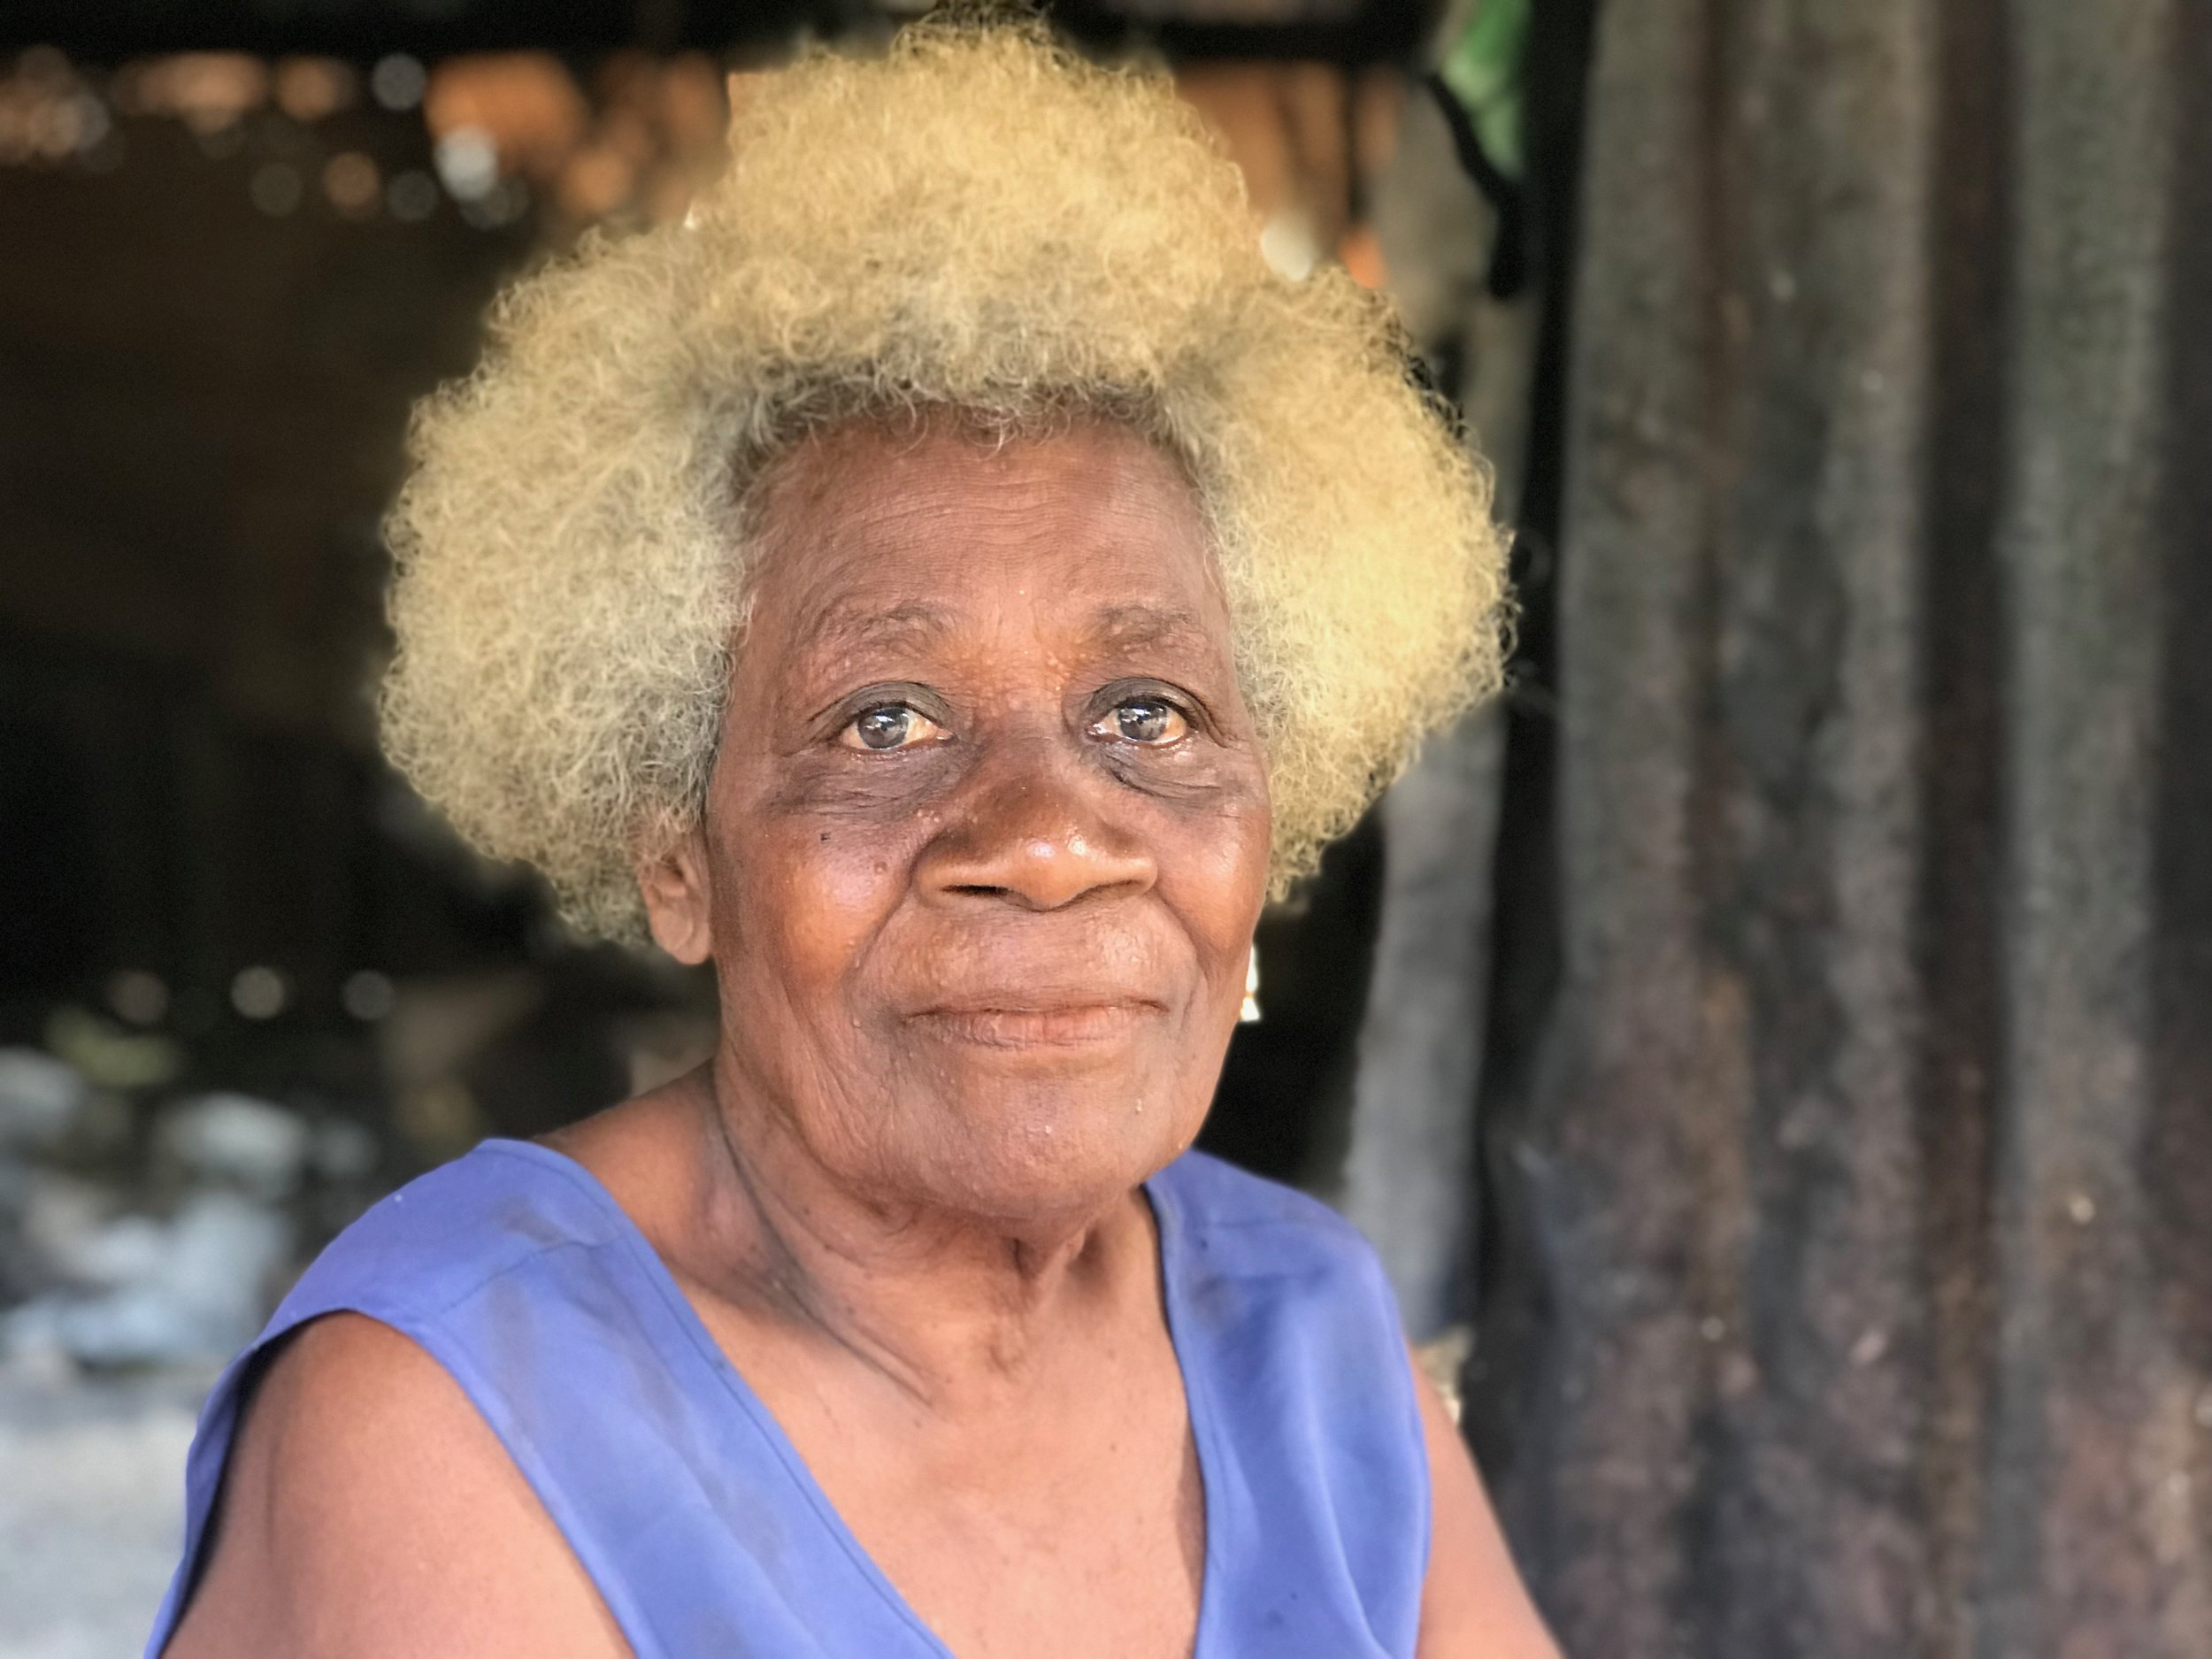 Serah is from the reef islands in Temotu. She's been trhough decades of ups and downs with her community, but she's anxious about the challenges they now face because of climate change.  She's hopeful that the chief will work to find solutions and relieved that the support from the government has improved quality of life so she can enjoy time with her family, instead of beig forced to relocate to higher ground.